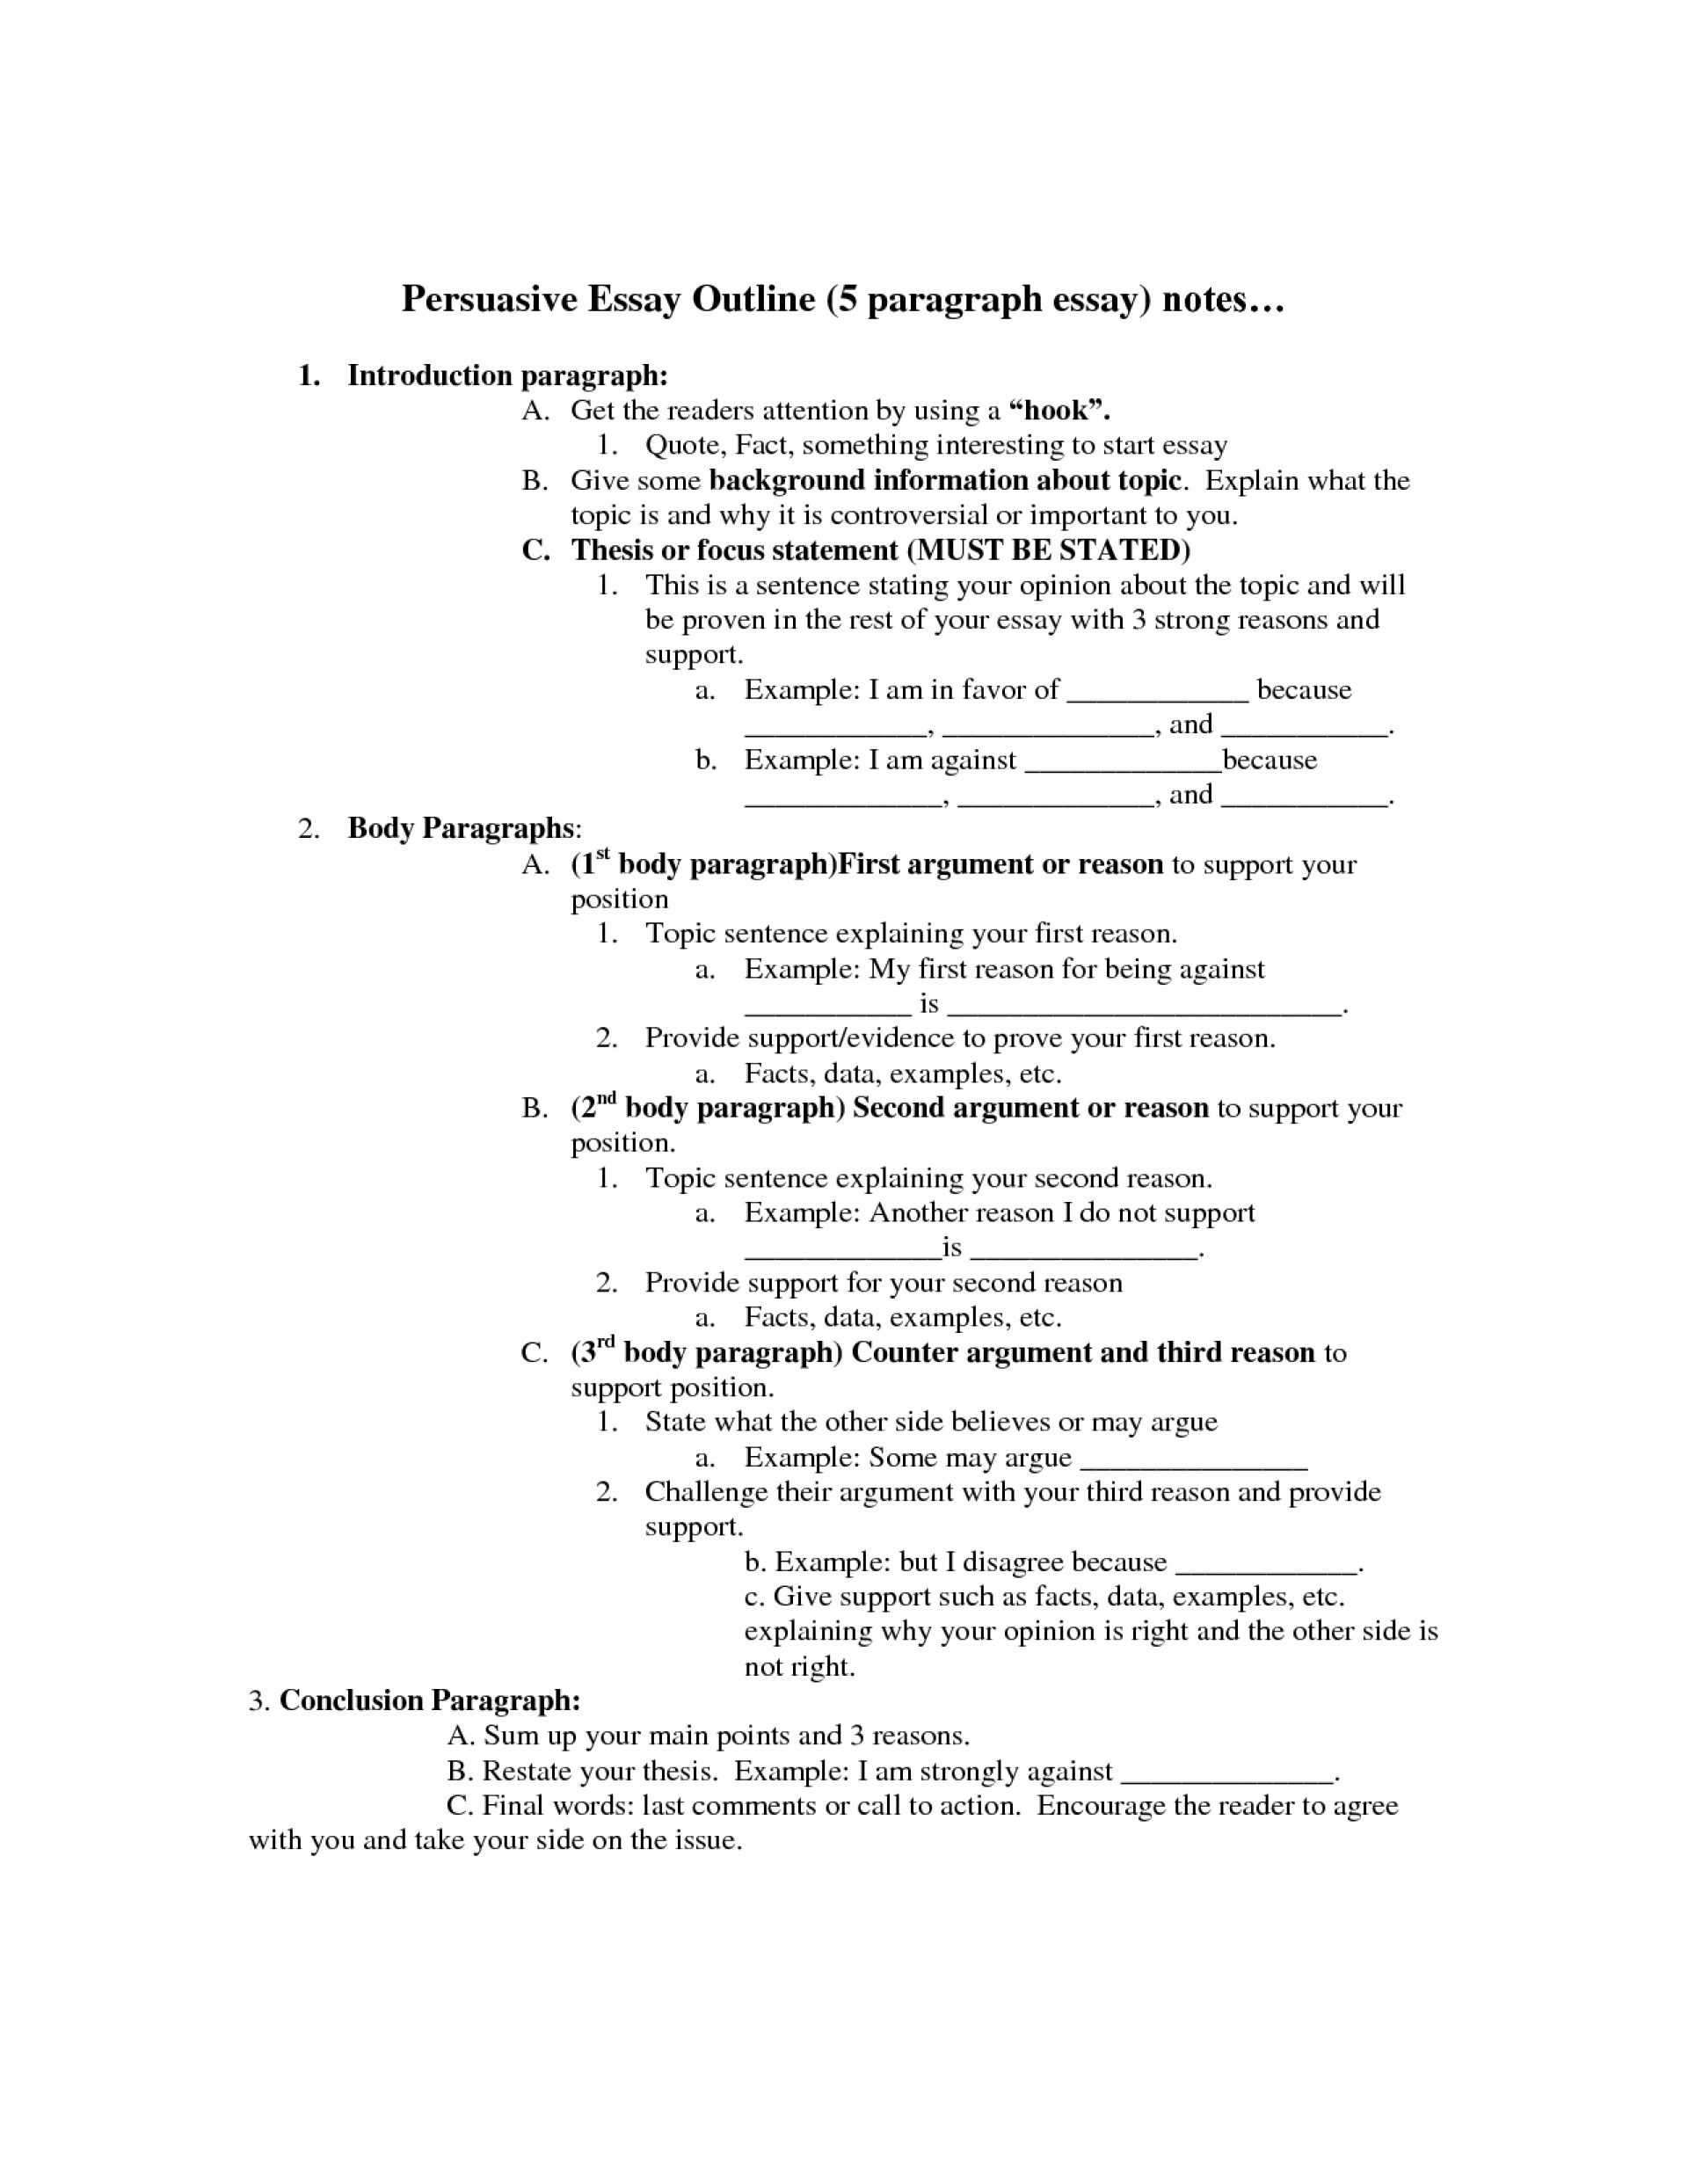 010 Outlining An Essay Best Exercise Outline Of Argumentative Classical Pattern 1920